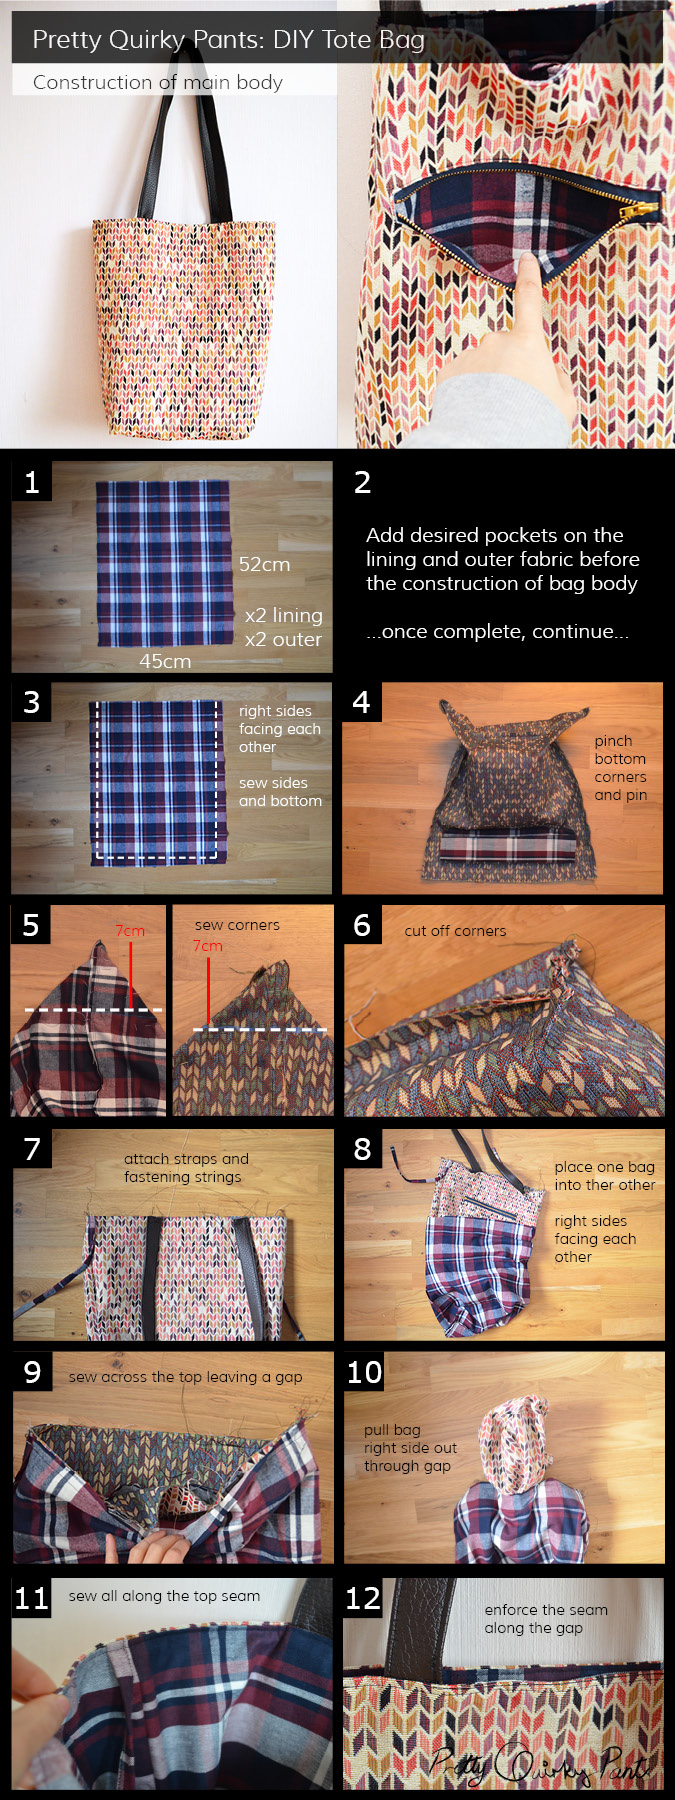 Instruction Layout - tote bag body